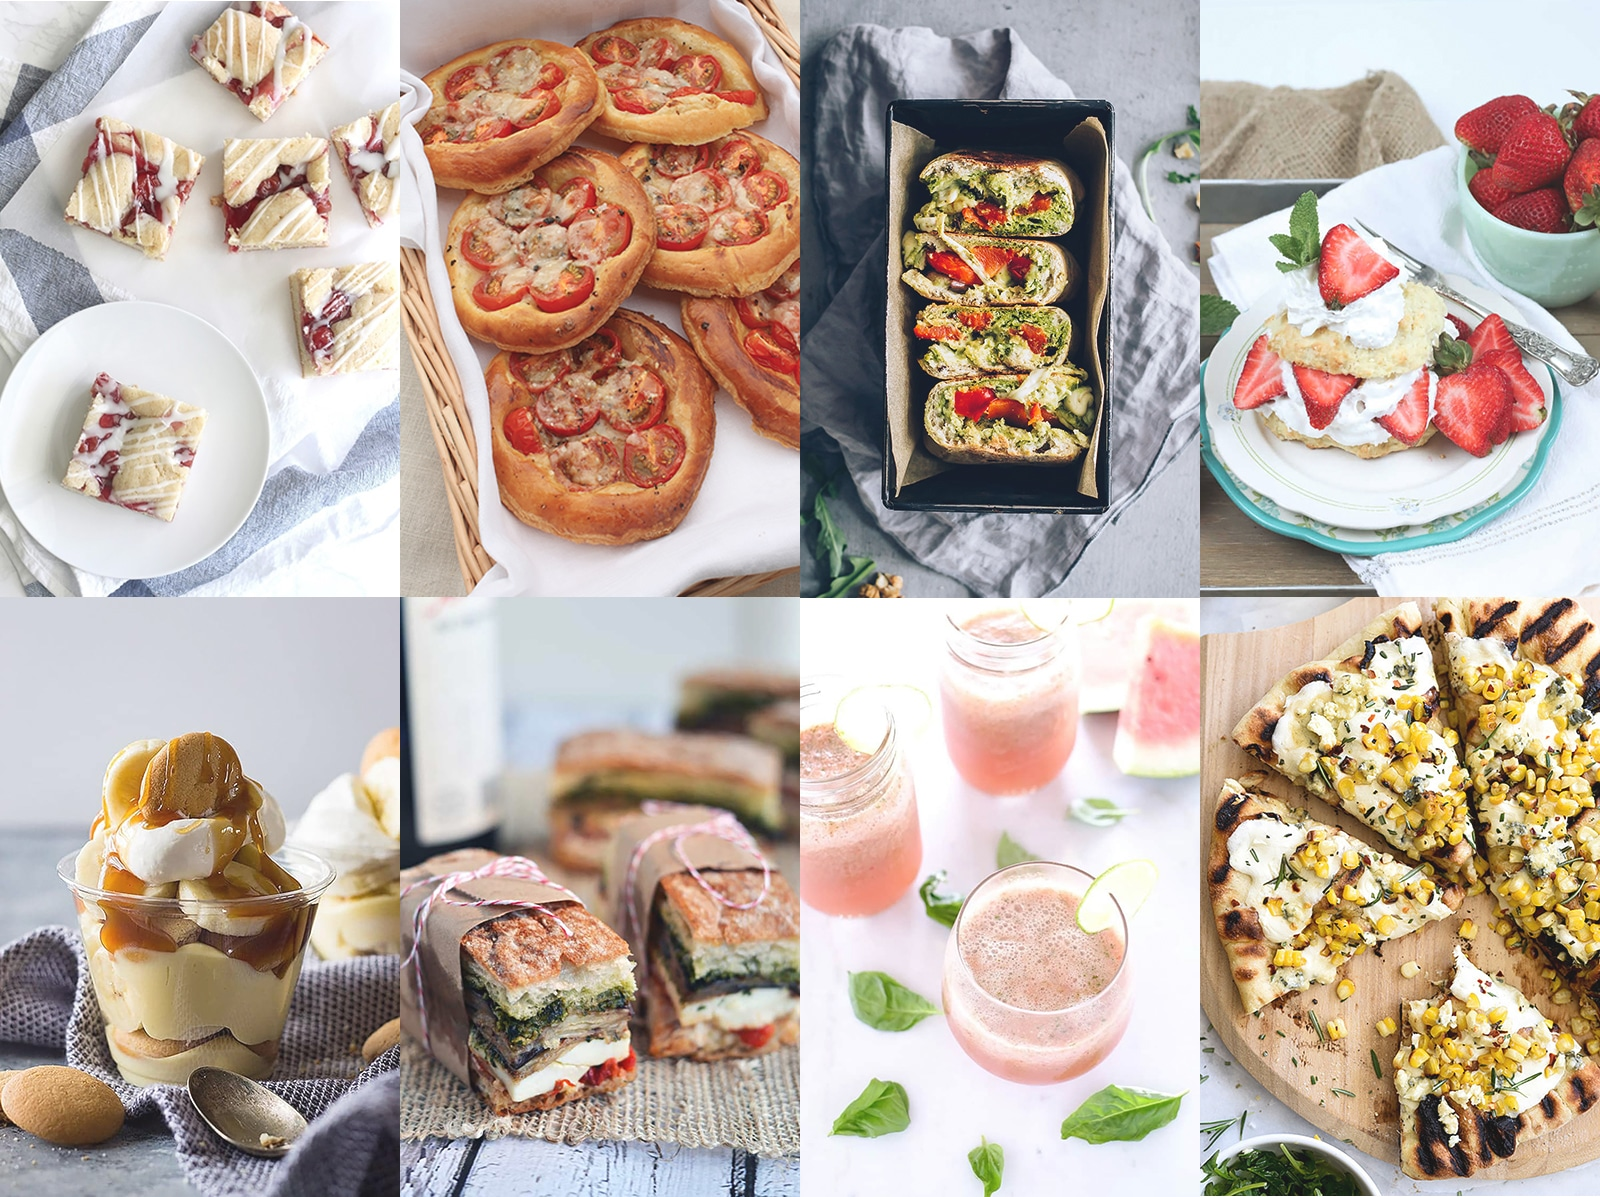 20 Picnic Recipes To Kick Off The Start of Summer